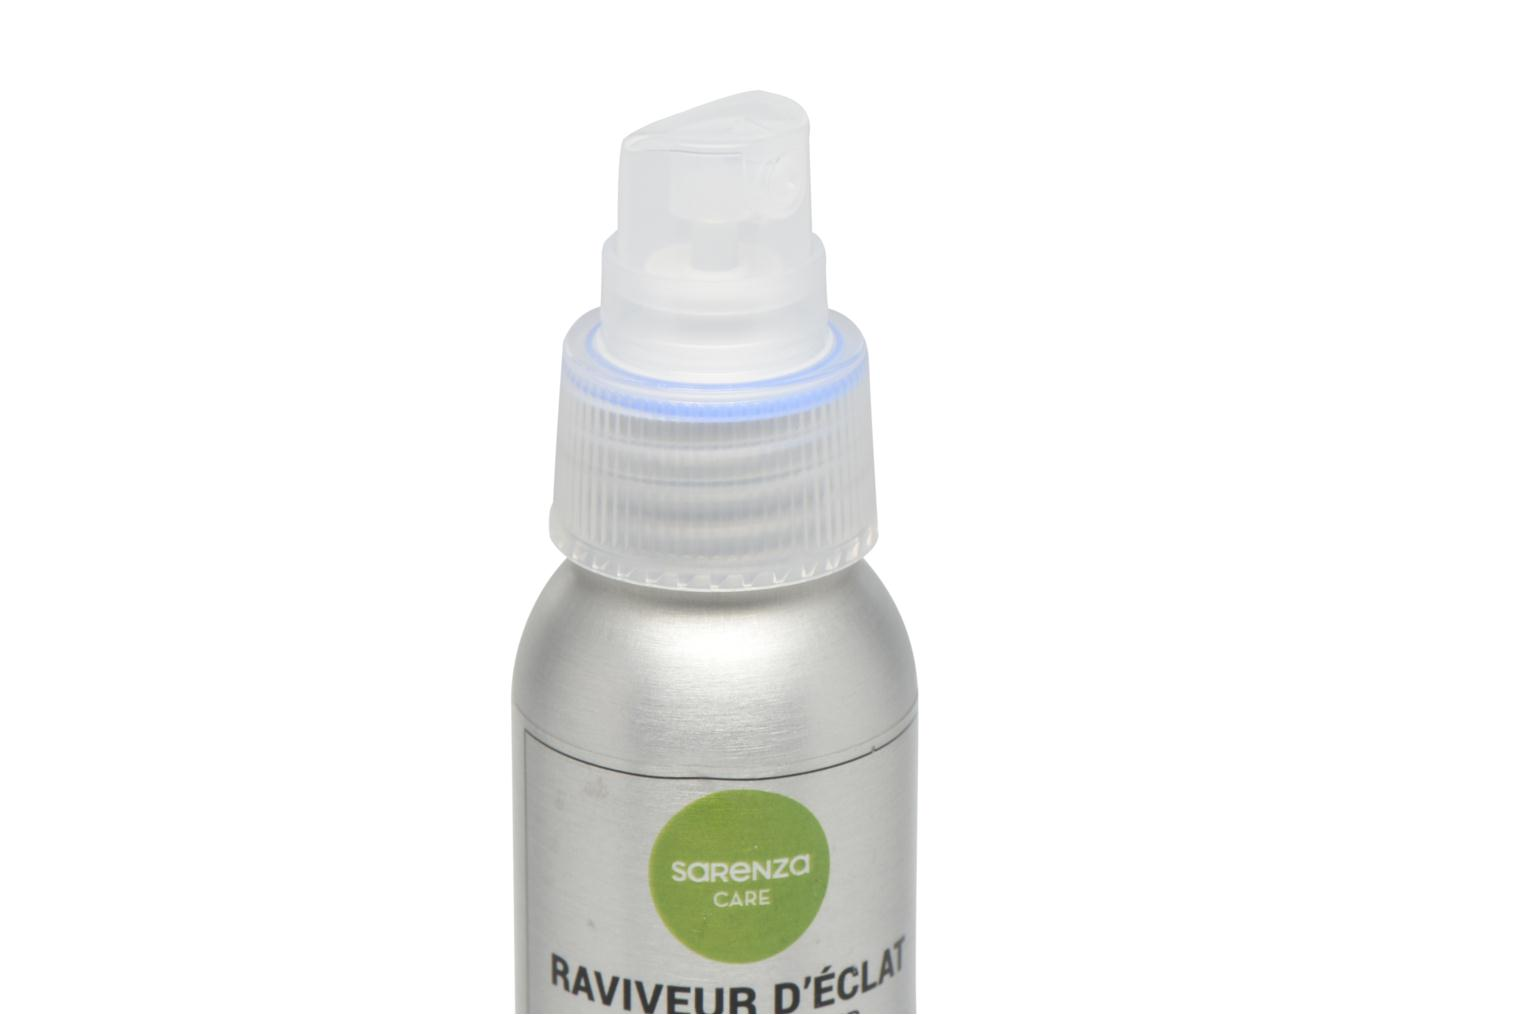 Care products Sarenza care Raviv daim 50 Ml Colorless view from above